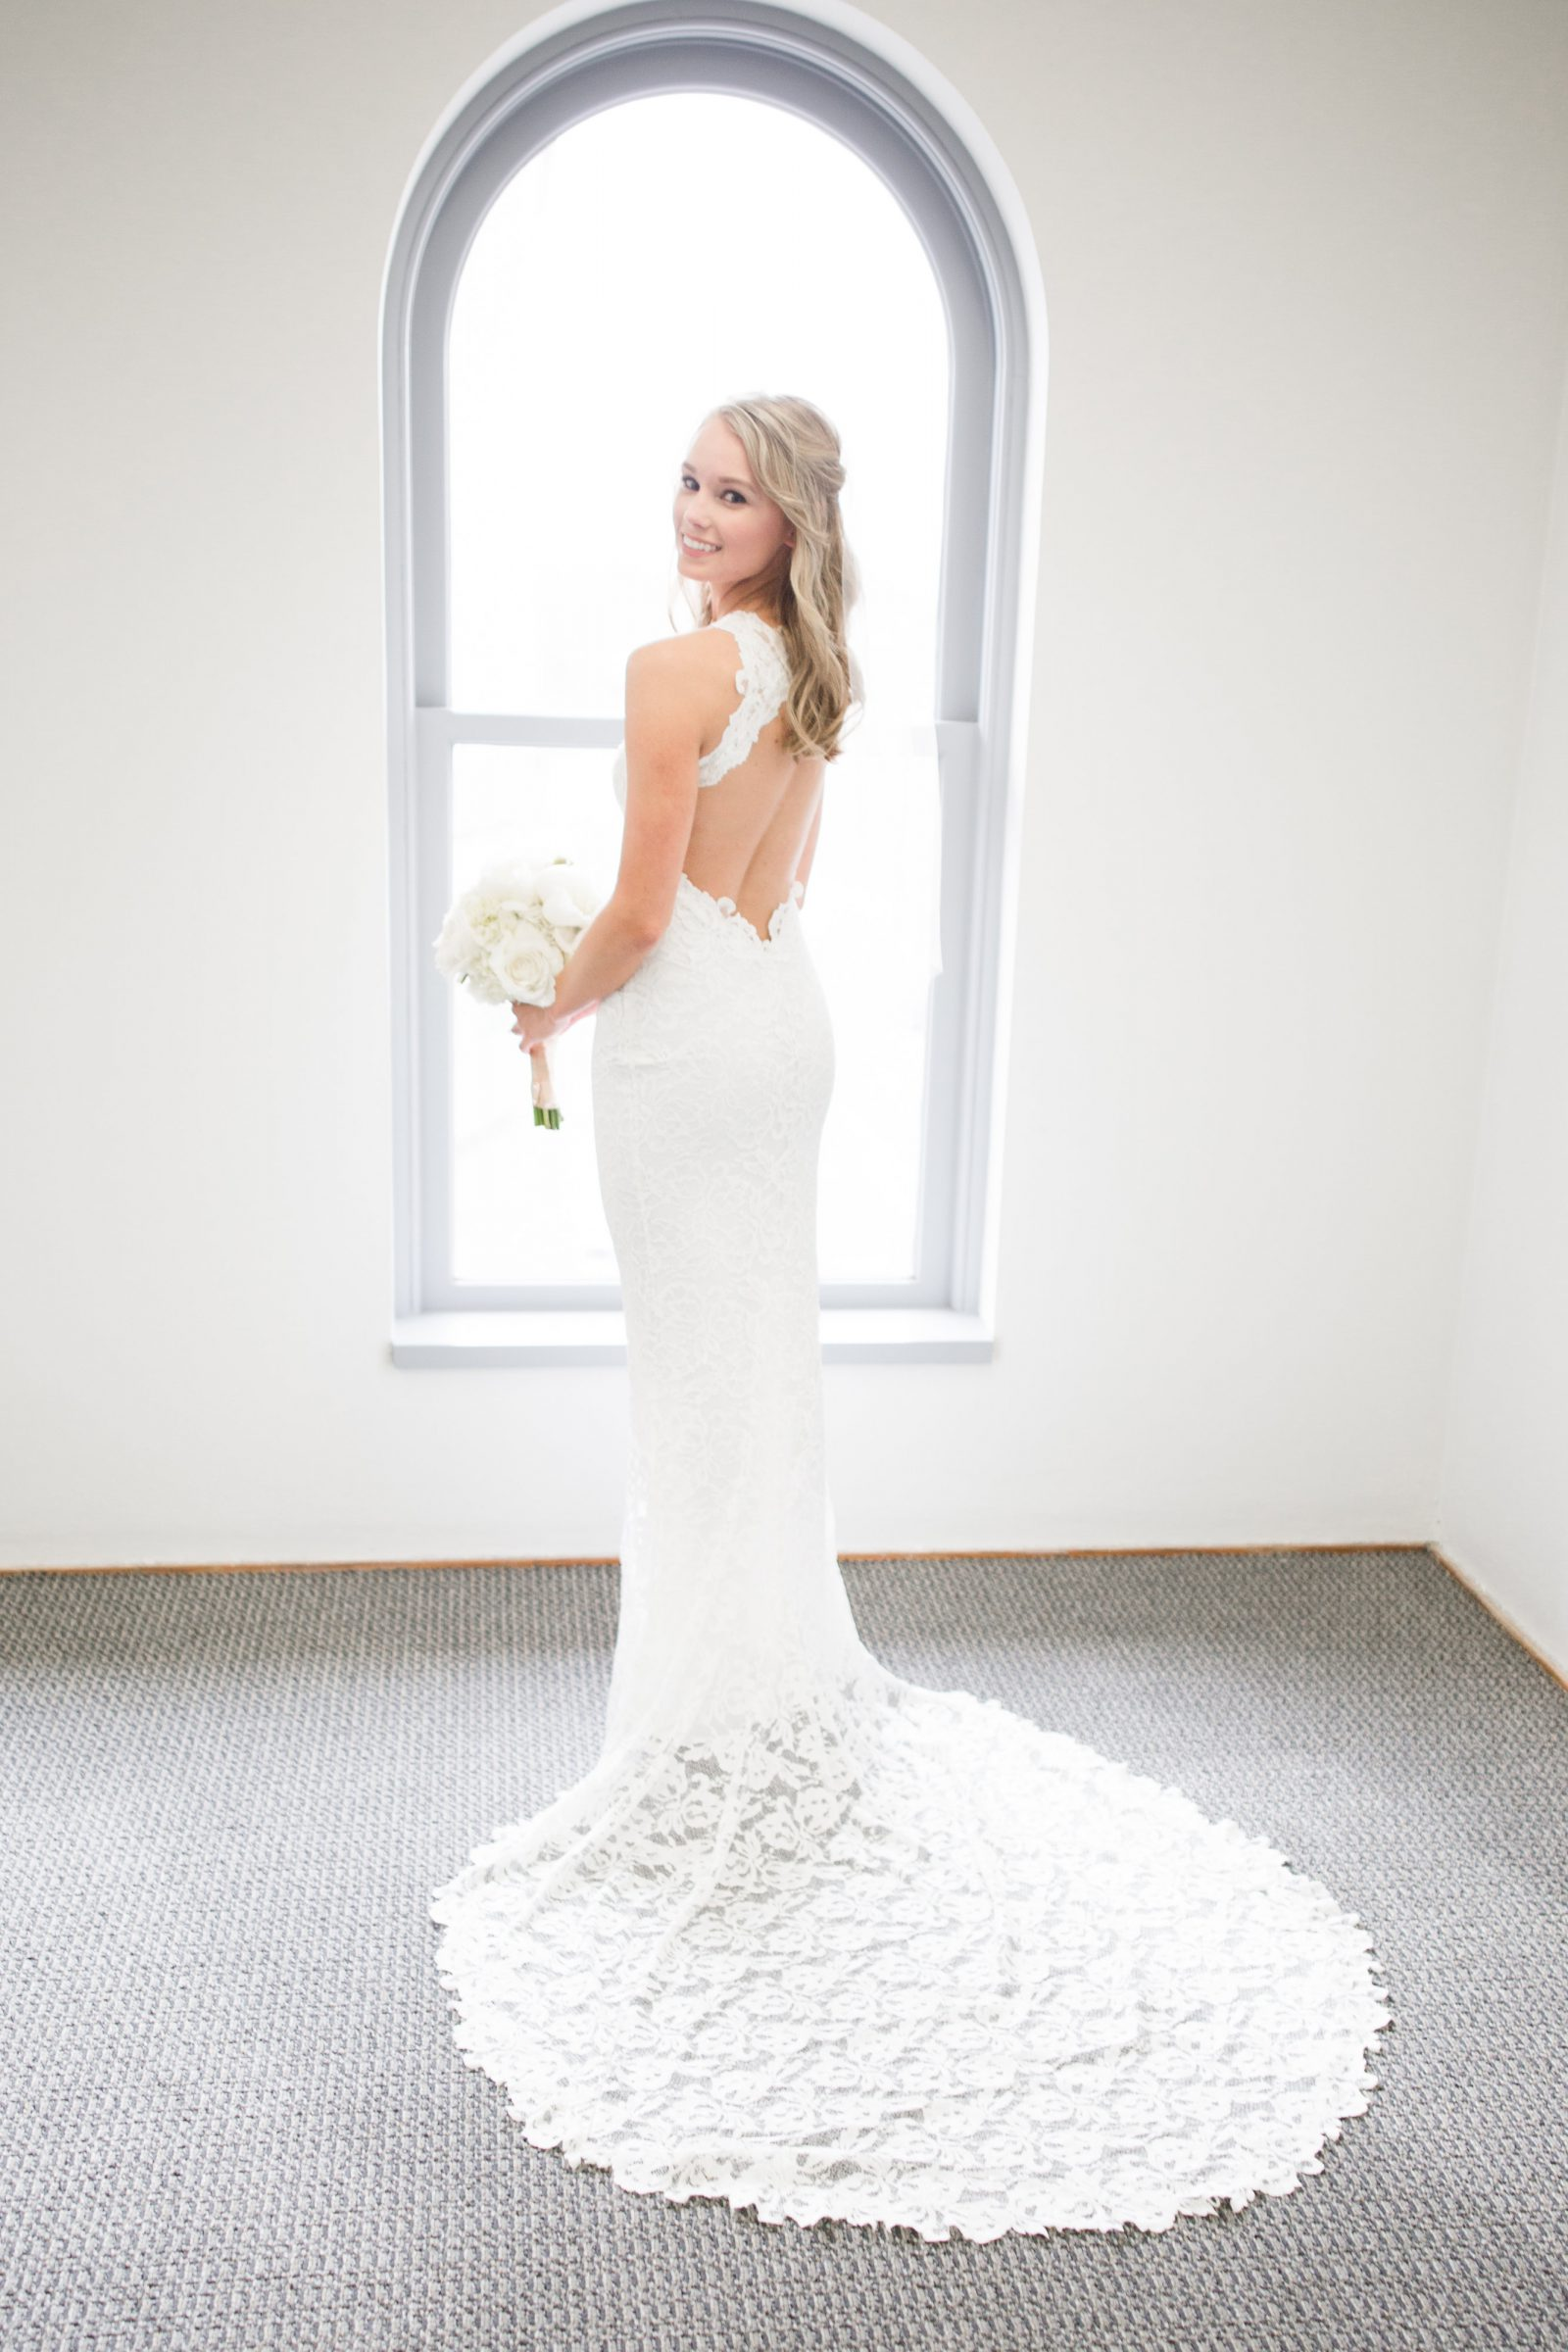 View More: http://sarabrickphotography.pass.us/petersen